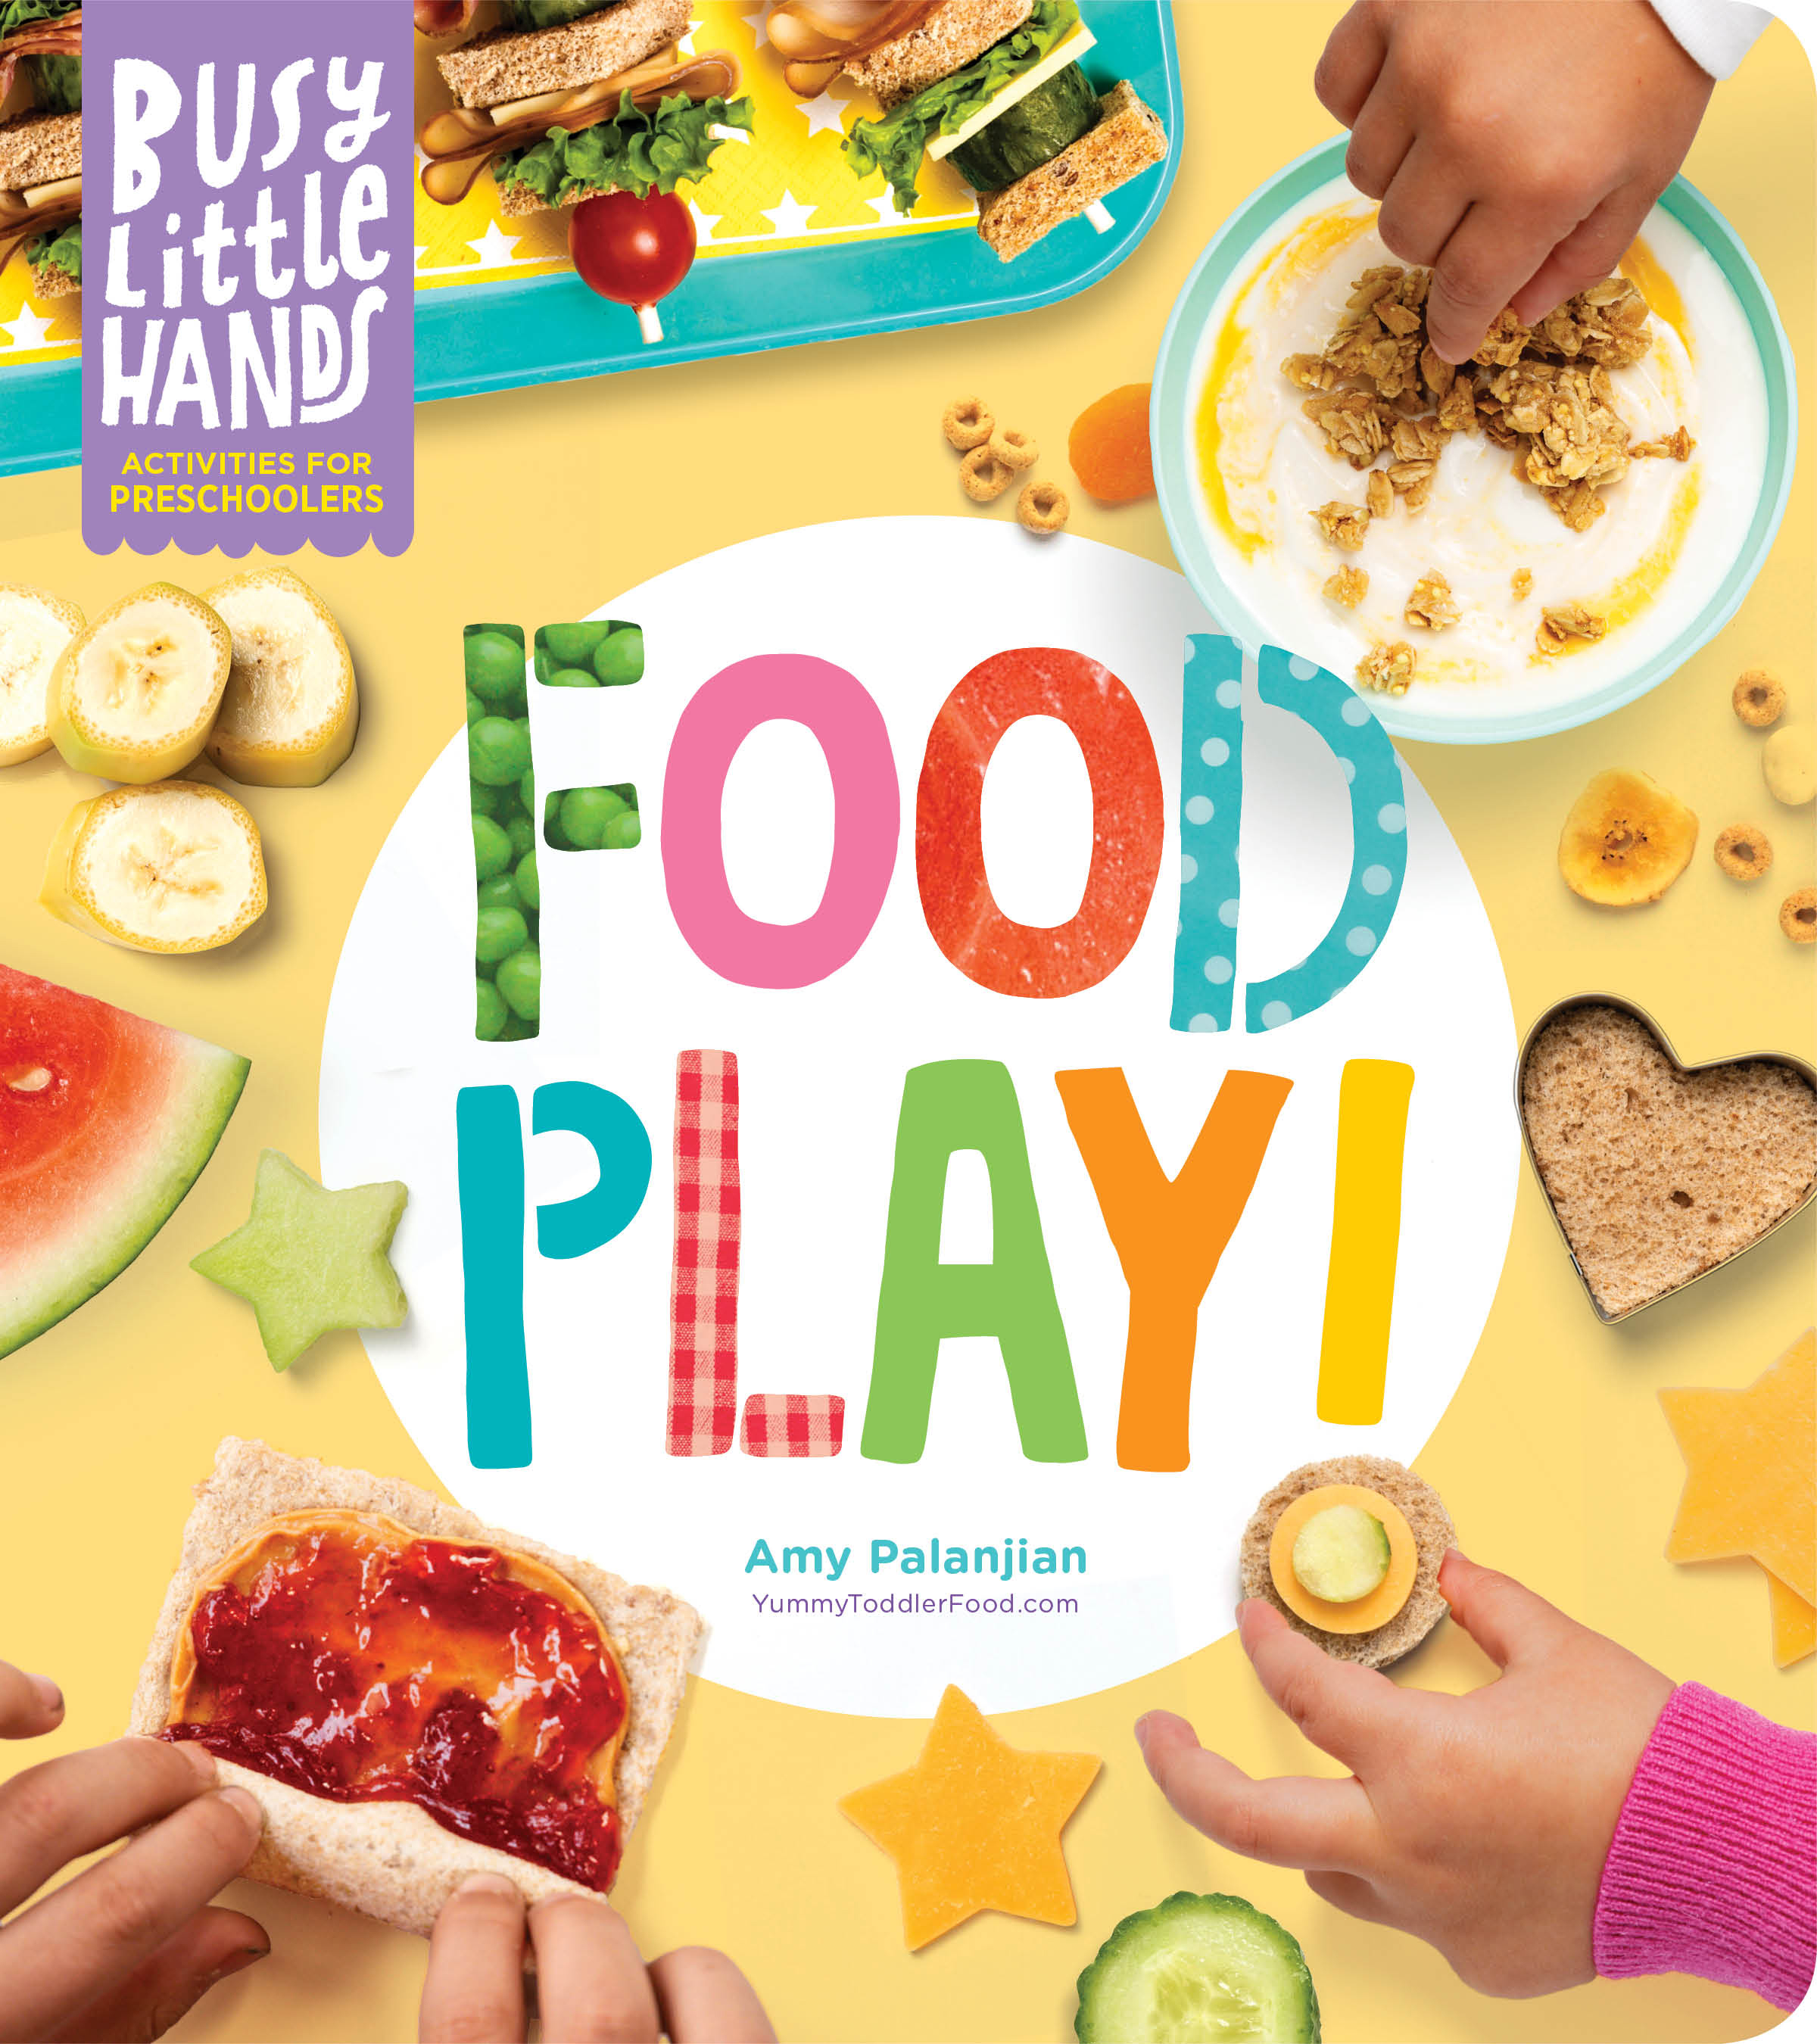 Busy Little Hands: Food Play! Activities for Preschoolers - Amy Palanjian